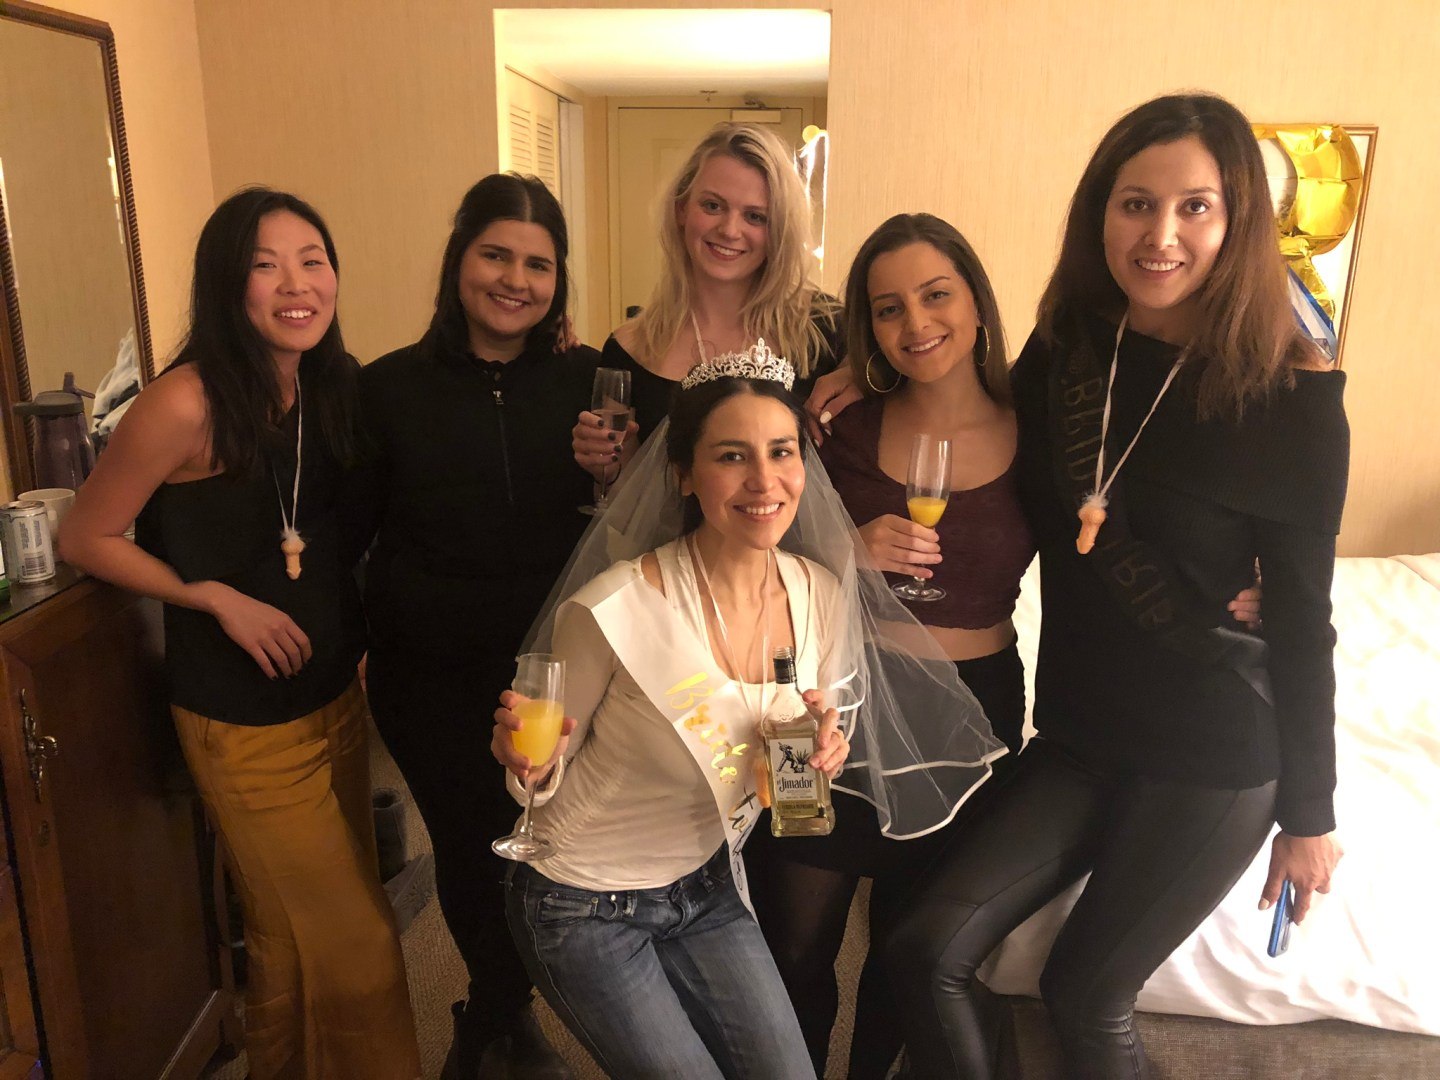 Bachelorette party in Whistler, British Columbia